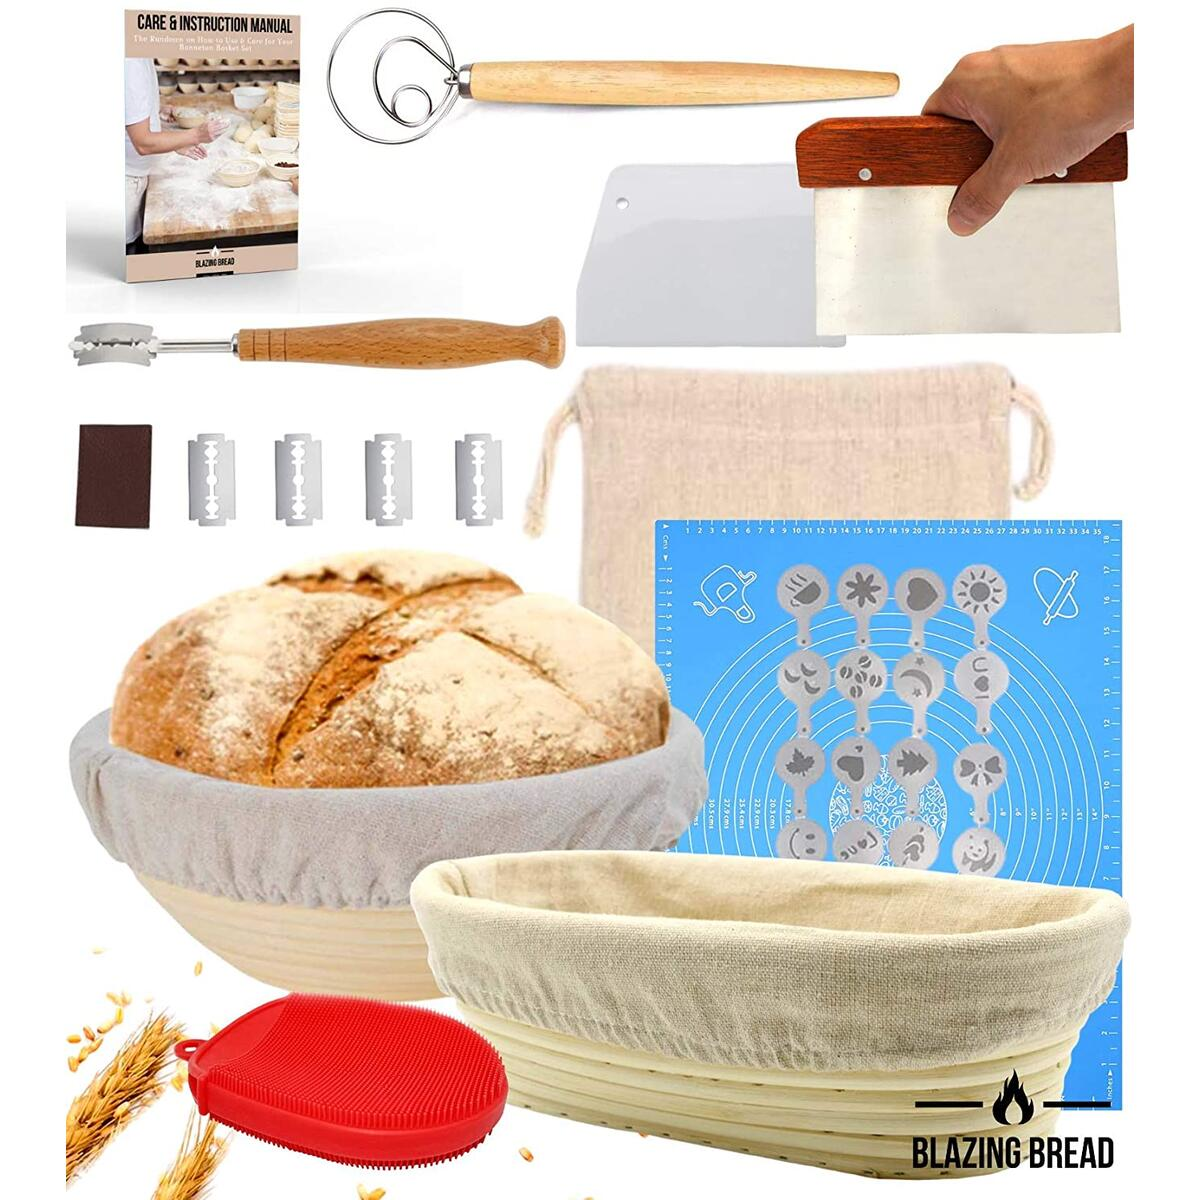 Complete Bread Proofing Basket Kit - Round & Oval Banneton Proofing Baskets for Sourdough, Bread Lame, Whisk, Dough Scraper